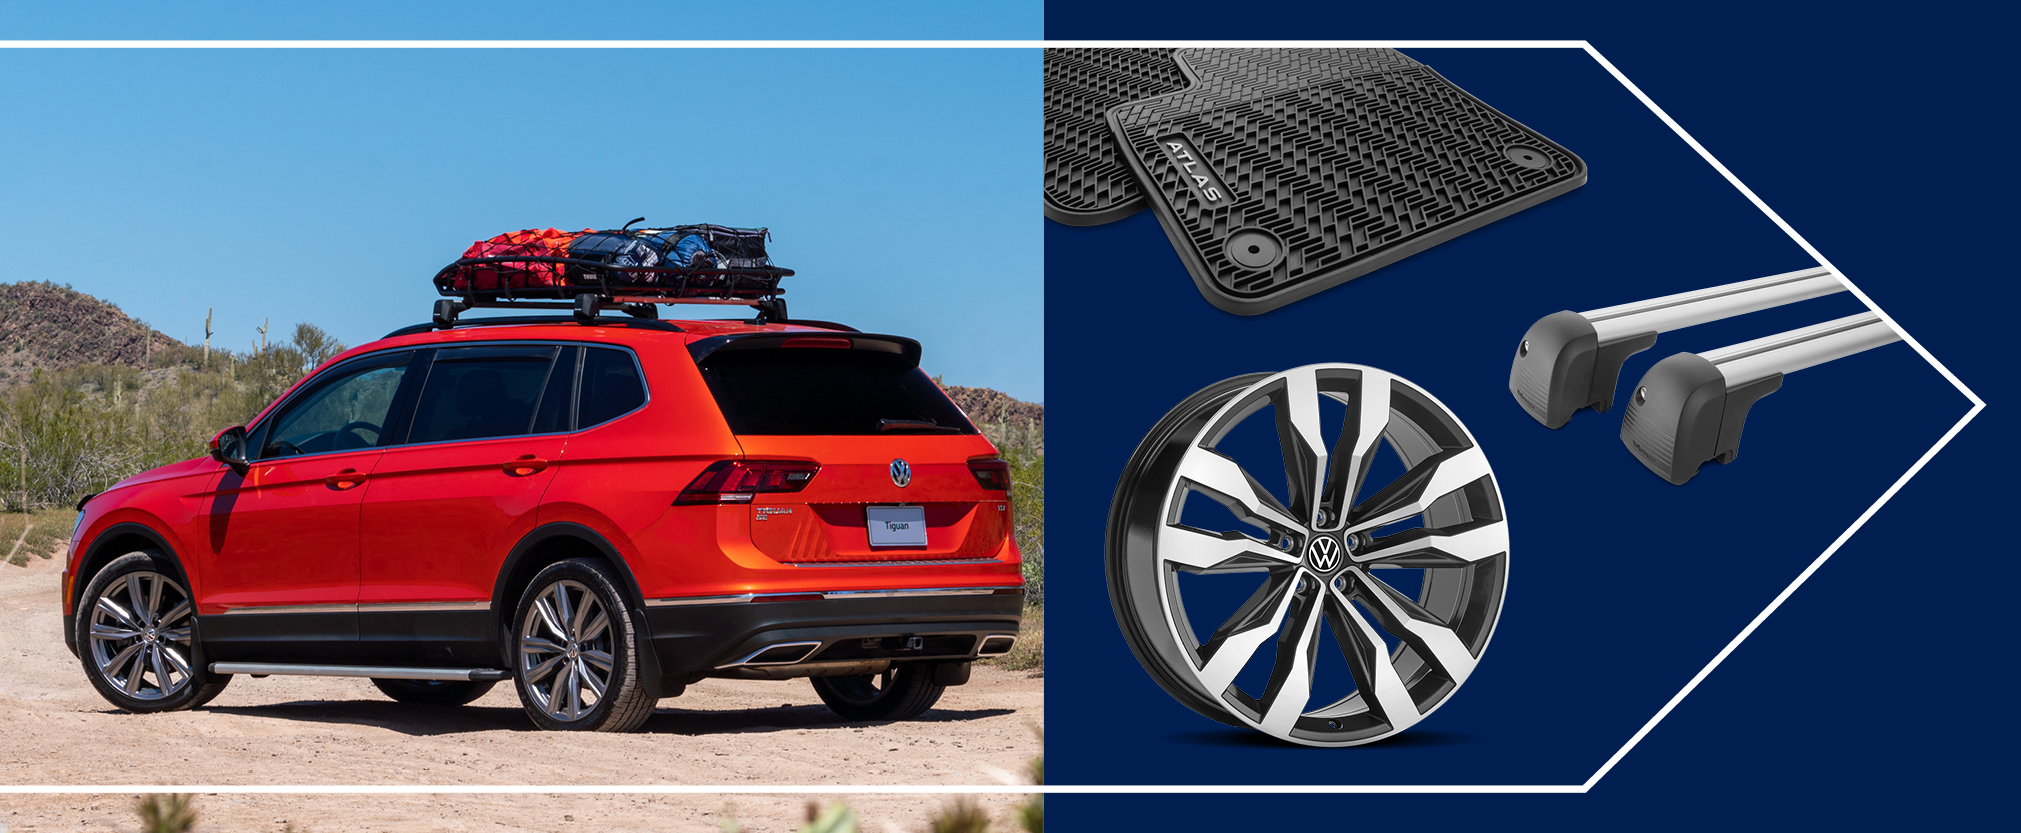 Get a 10% rebate by mail12 via a Volkswagen Visa® Prepaid Card13 (up to $300) when you purchase select Volkswagen Accessories between 10.01.20 and 12.31.20